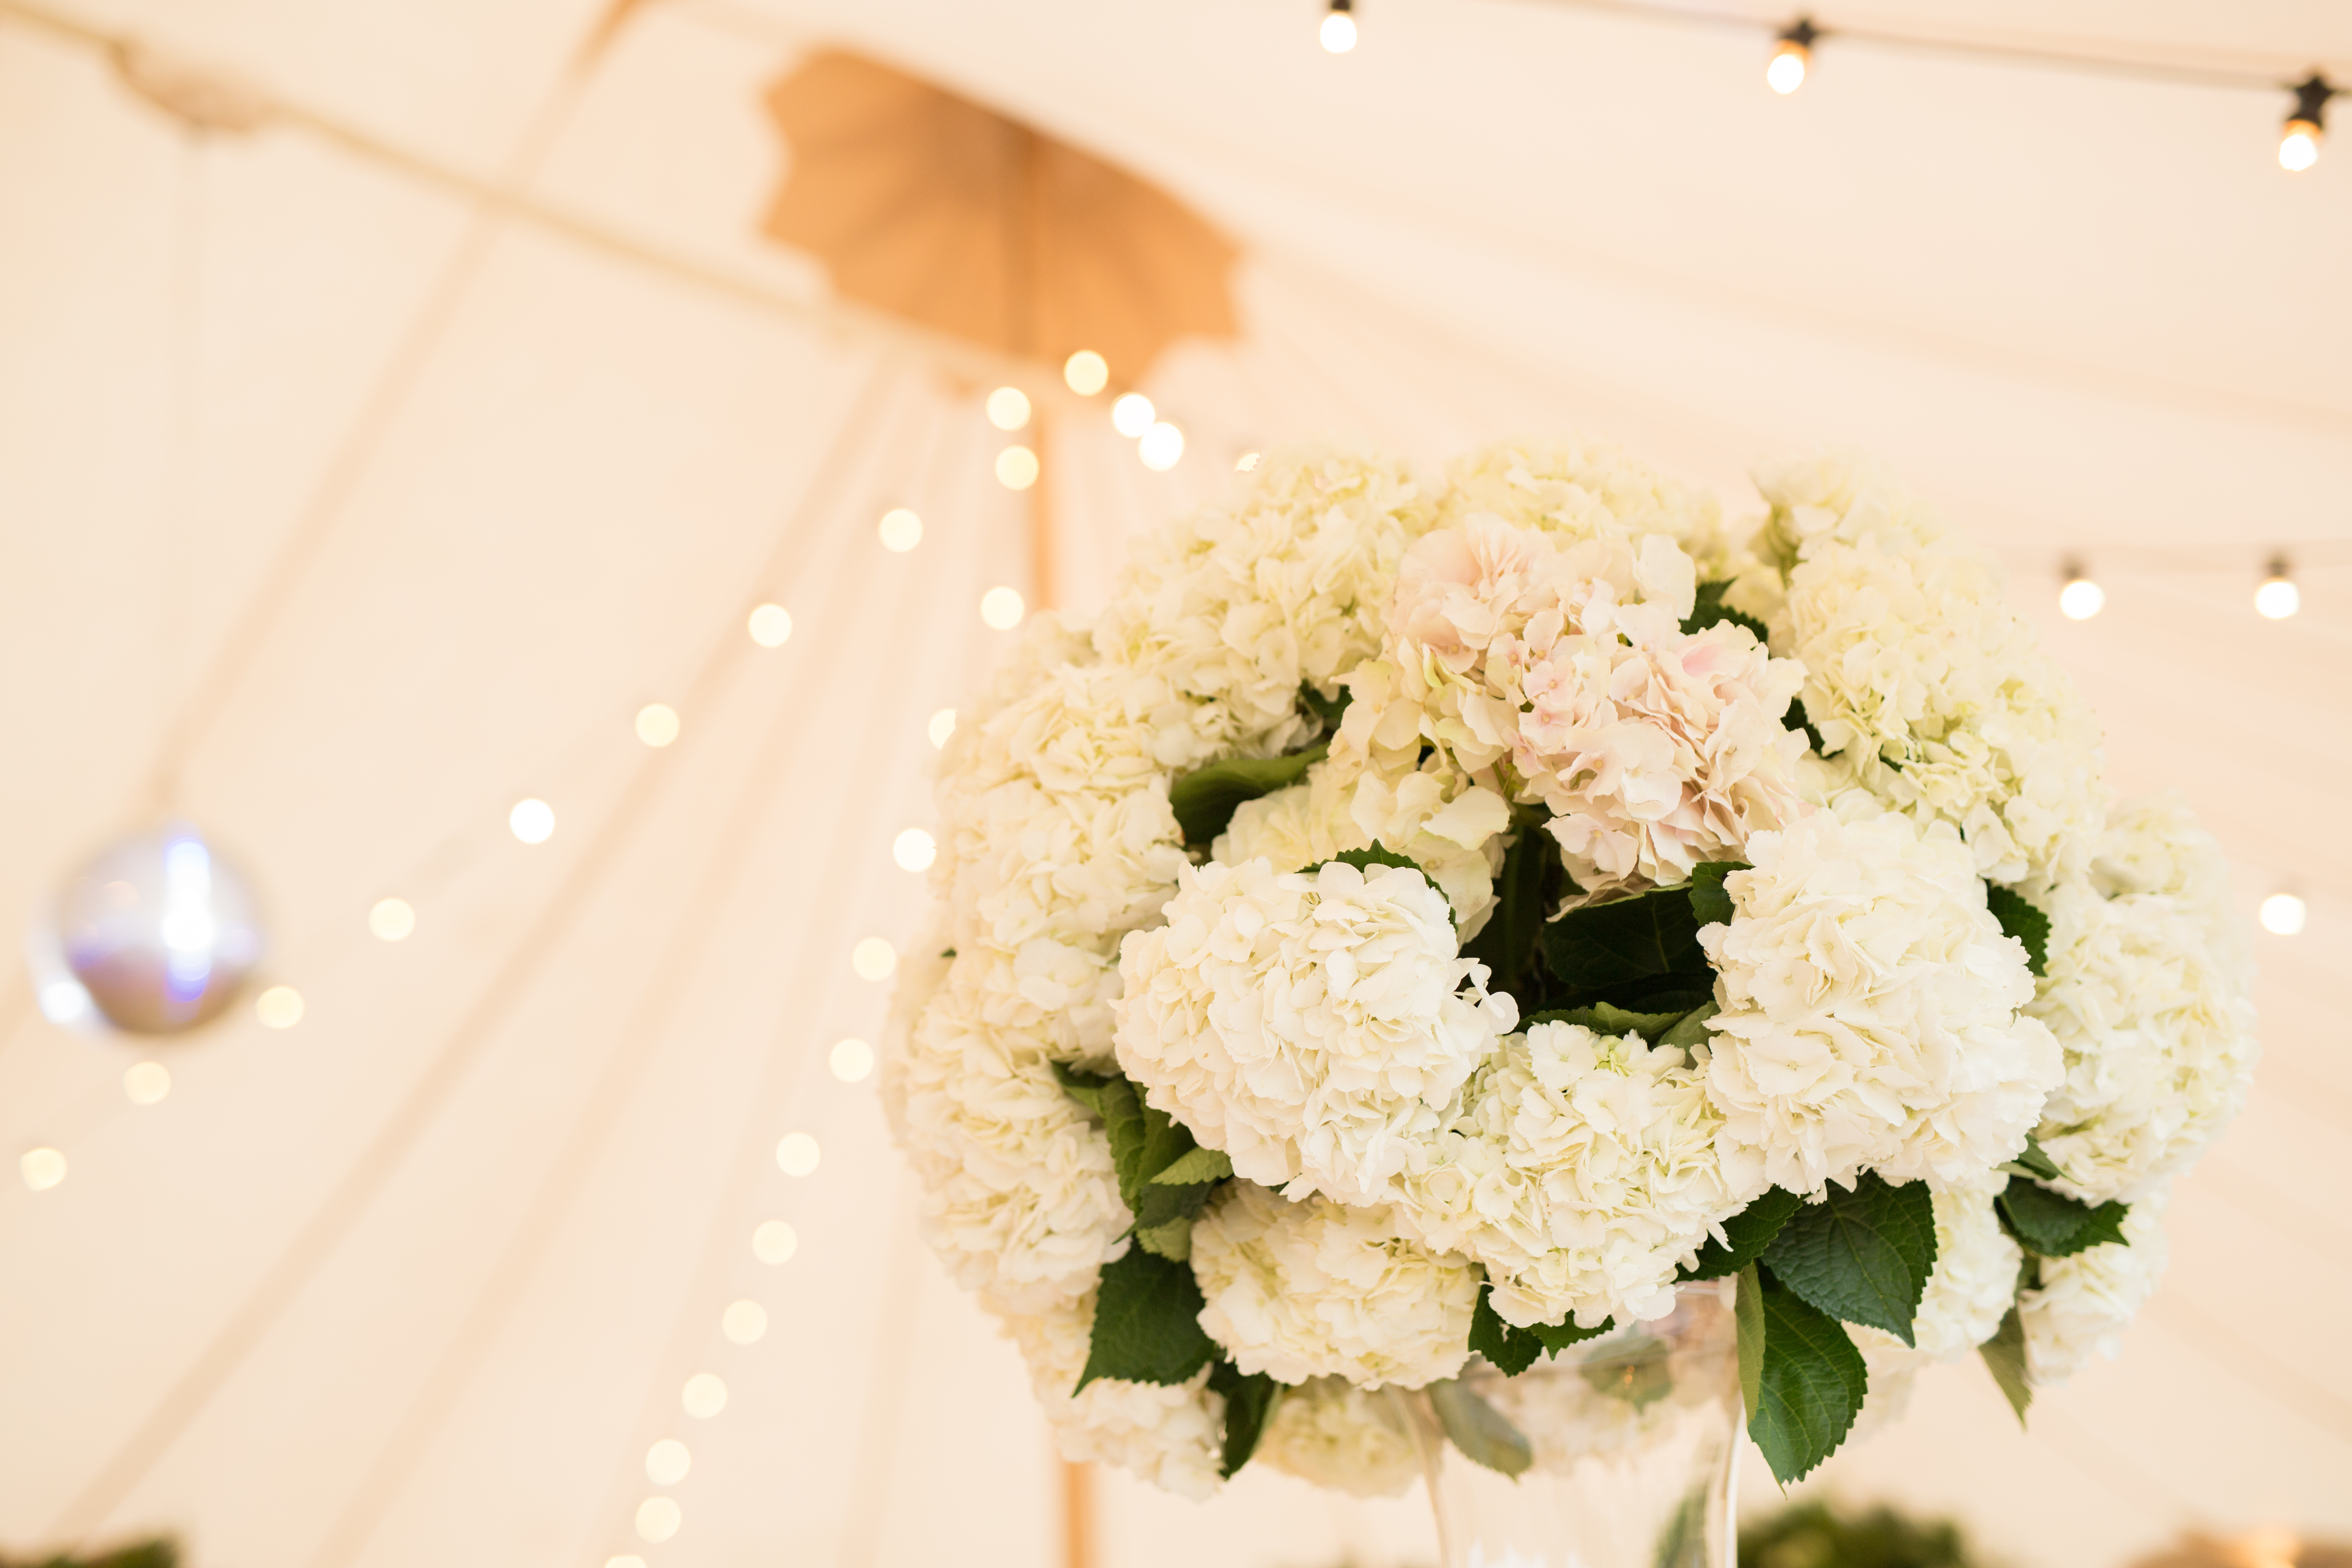 White hydrangeas by Hart Company against the oyster coloured Sperry canvas